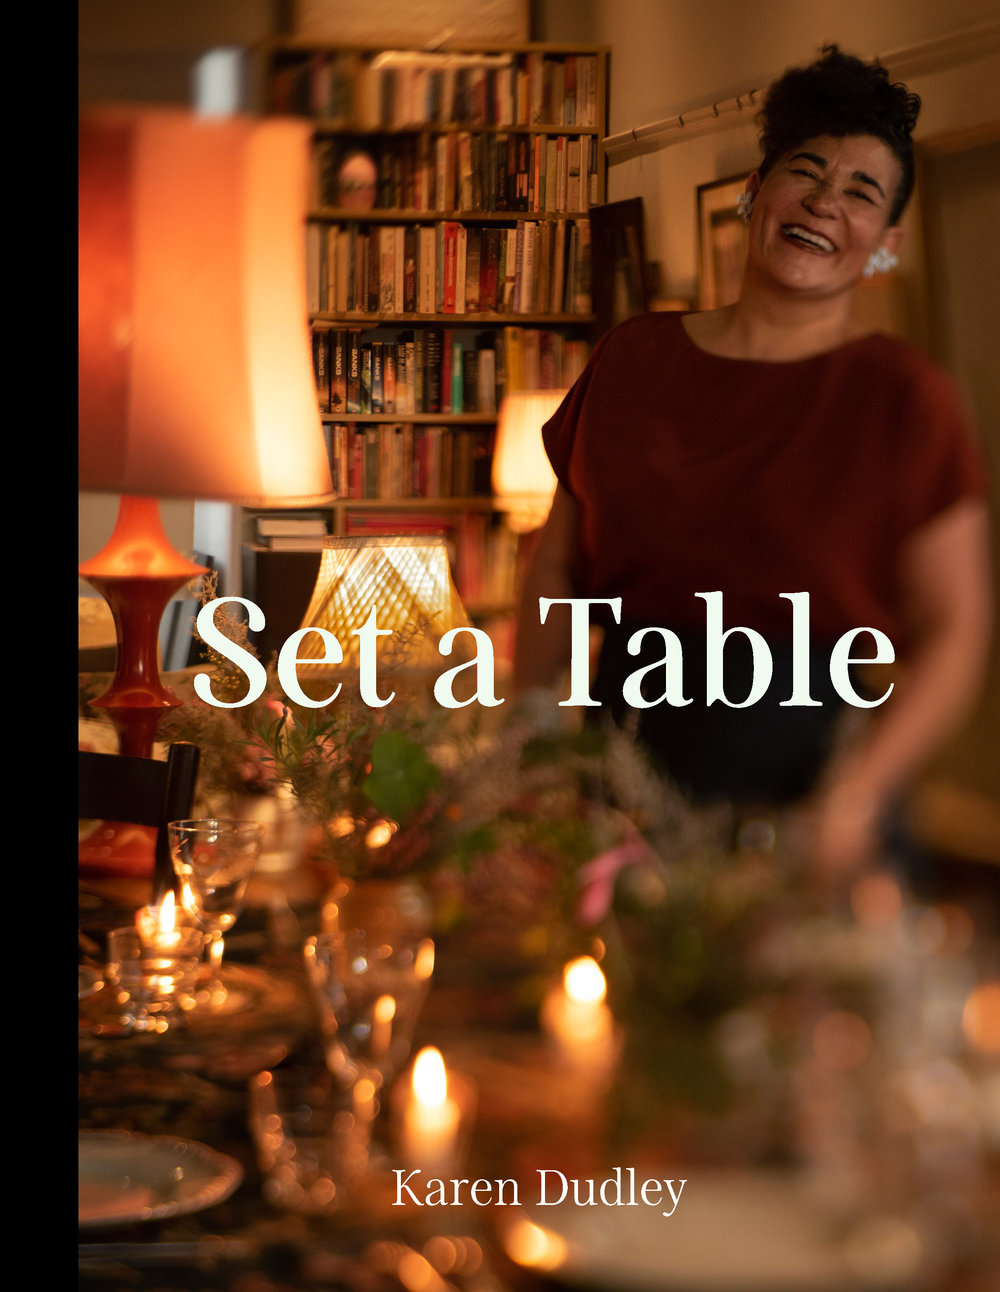 Set a Table_Cover.jpg